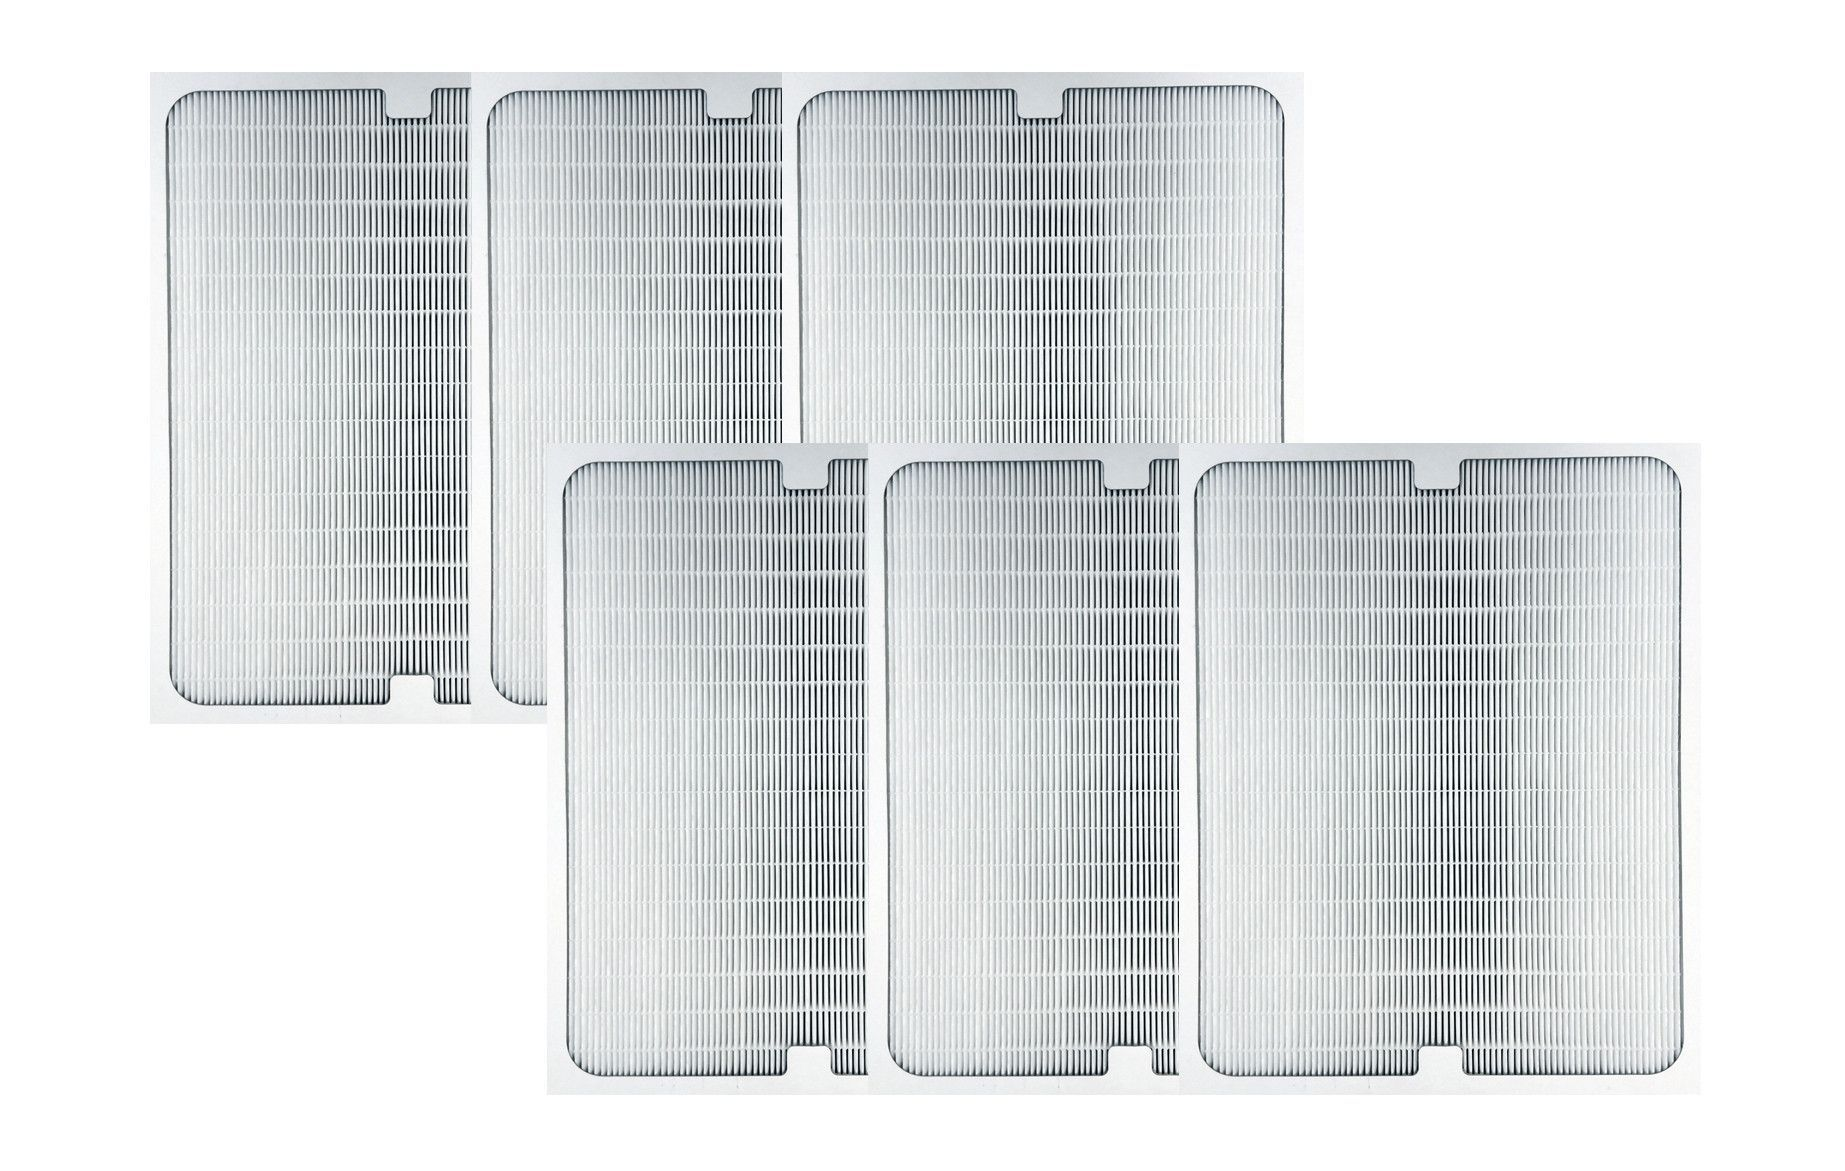 6 Replacement Air Purifier Filters For Blueair 200 300 Series Purifiers Part S 200pf 201pf Filter Air Purifier Air Purifier Purifier